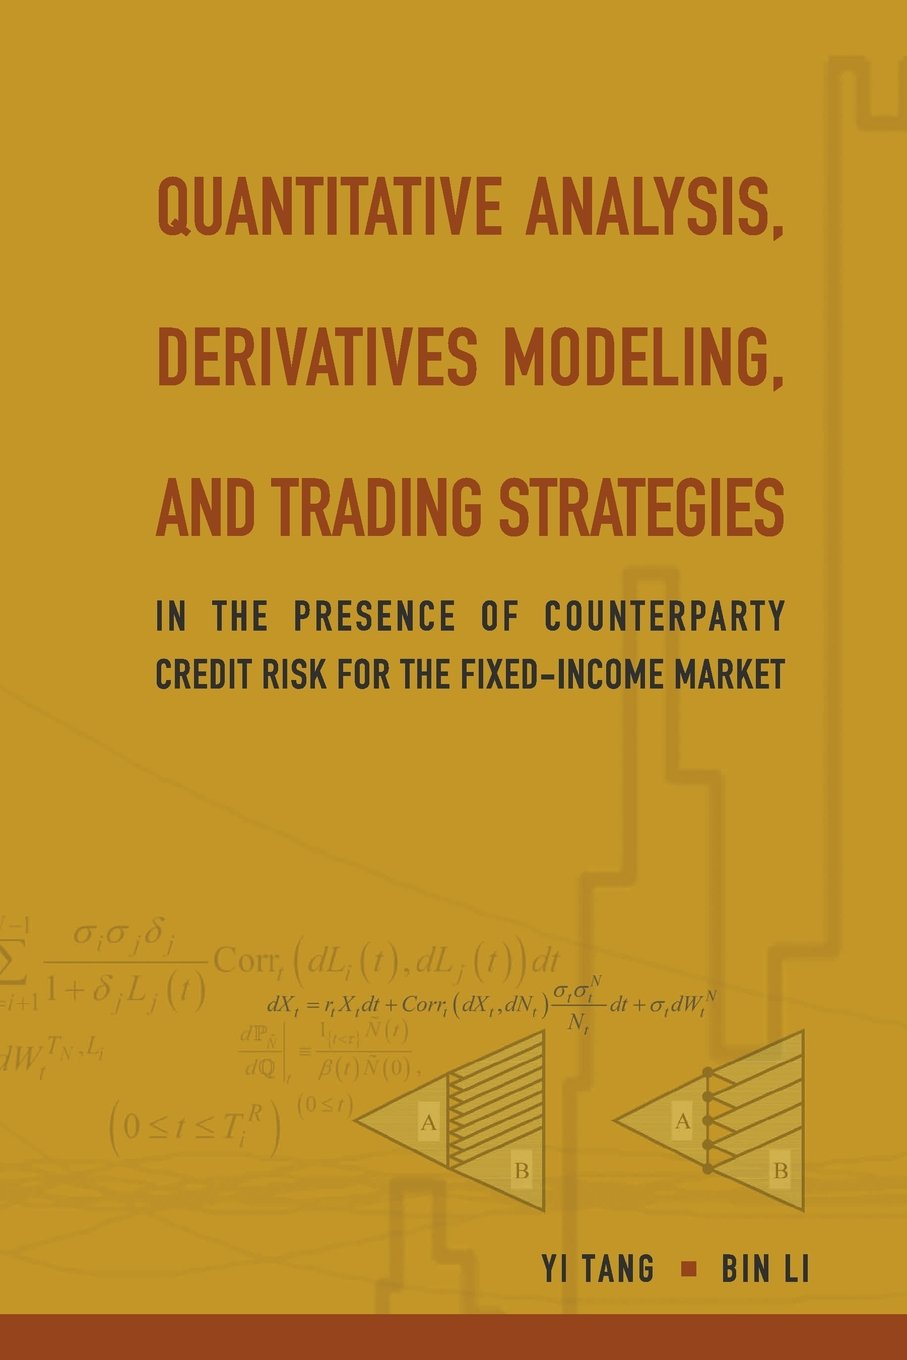 Download Quantitative Analysis, Derivatives Modeling, And Trading Strategies: In The Presence Of Counterparty Credit Risk For The Fixed-Income Market ebook